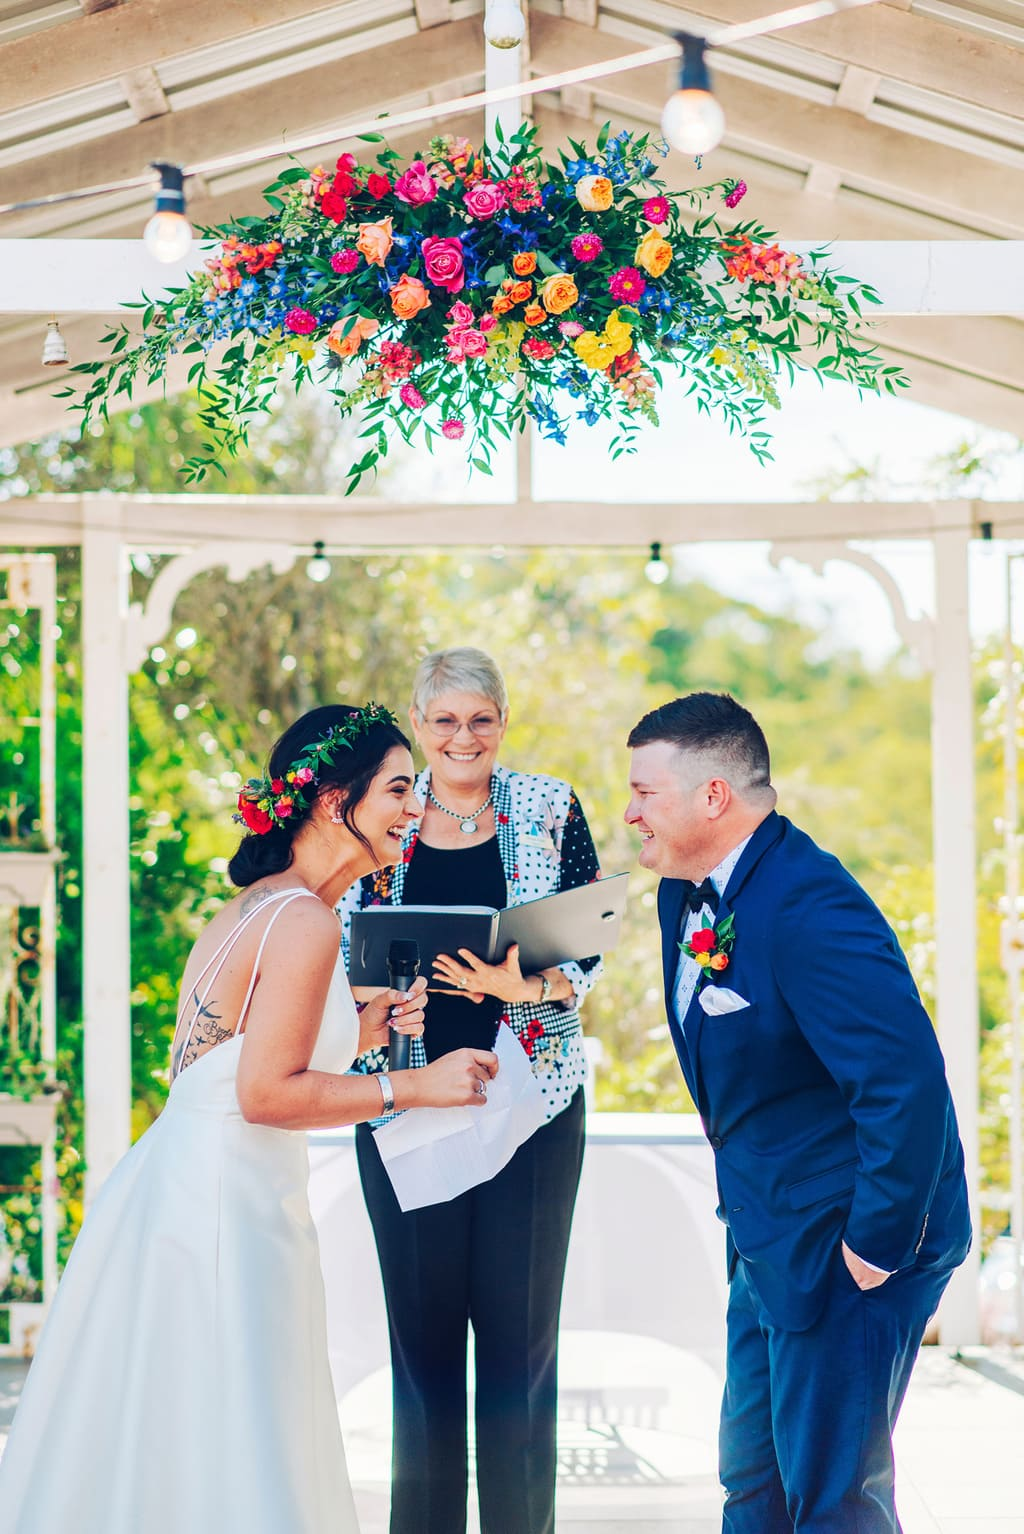 Graesenne & Brock's Vibrant Cocktail Wedding | Photography: Madelyn Holmes Photographics